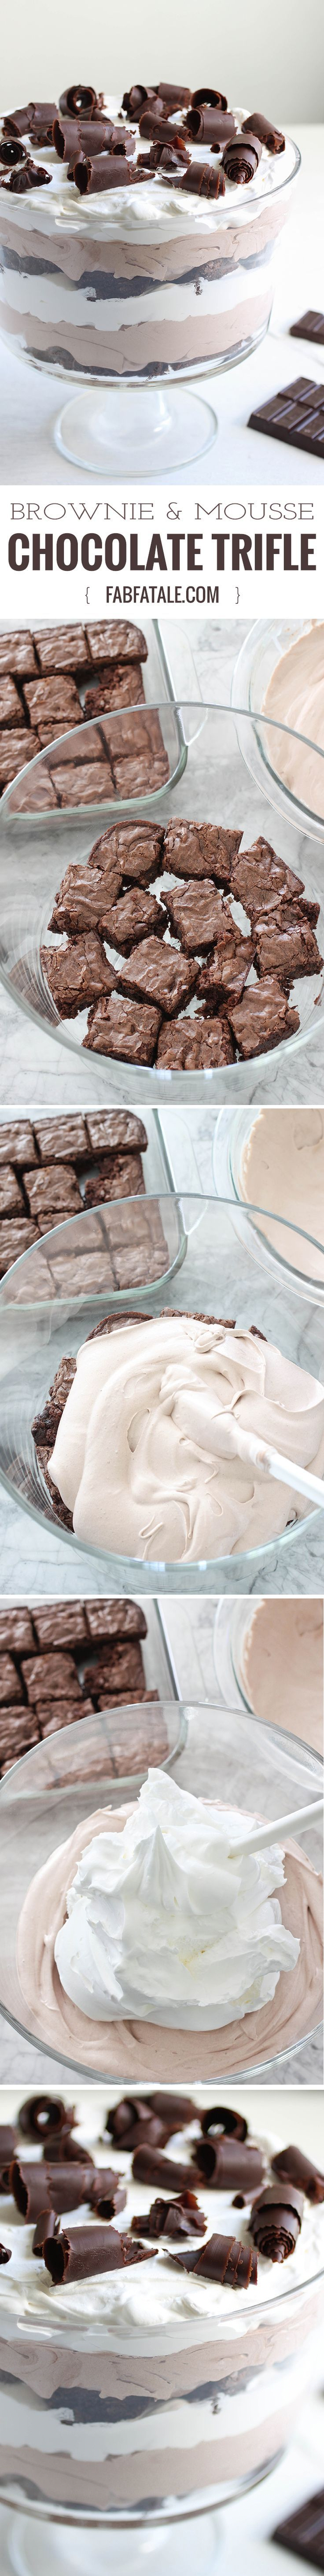 this chocolate brownie and mousse trifle feeds a crowd, has a beautiful… http://www.keeshndb.com/